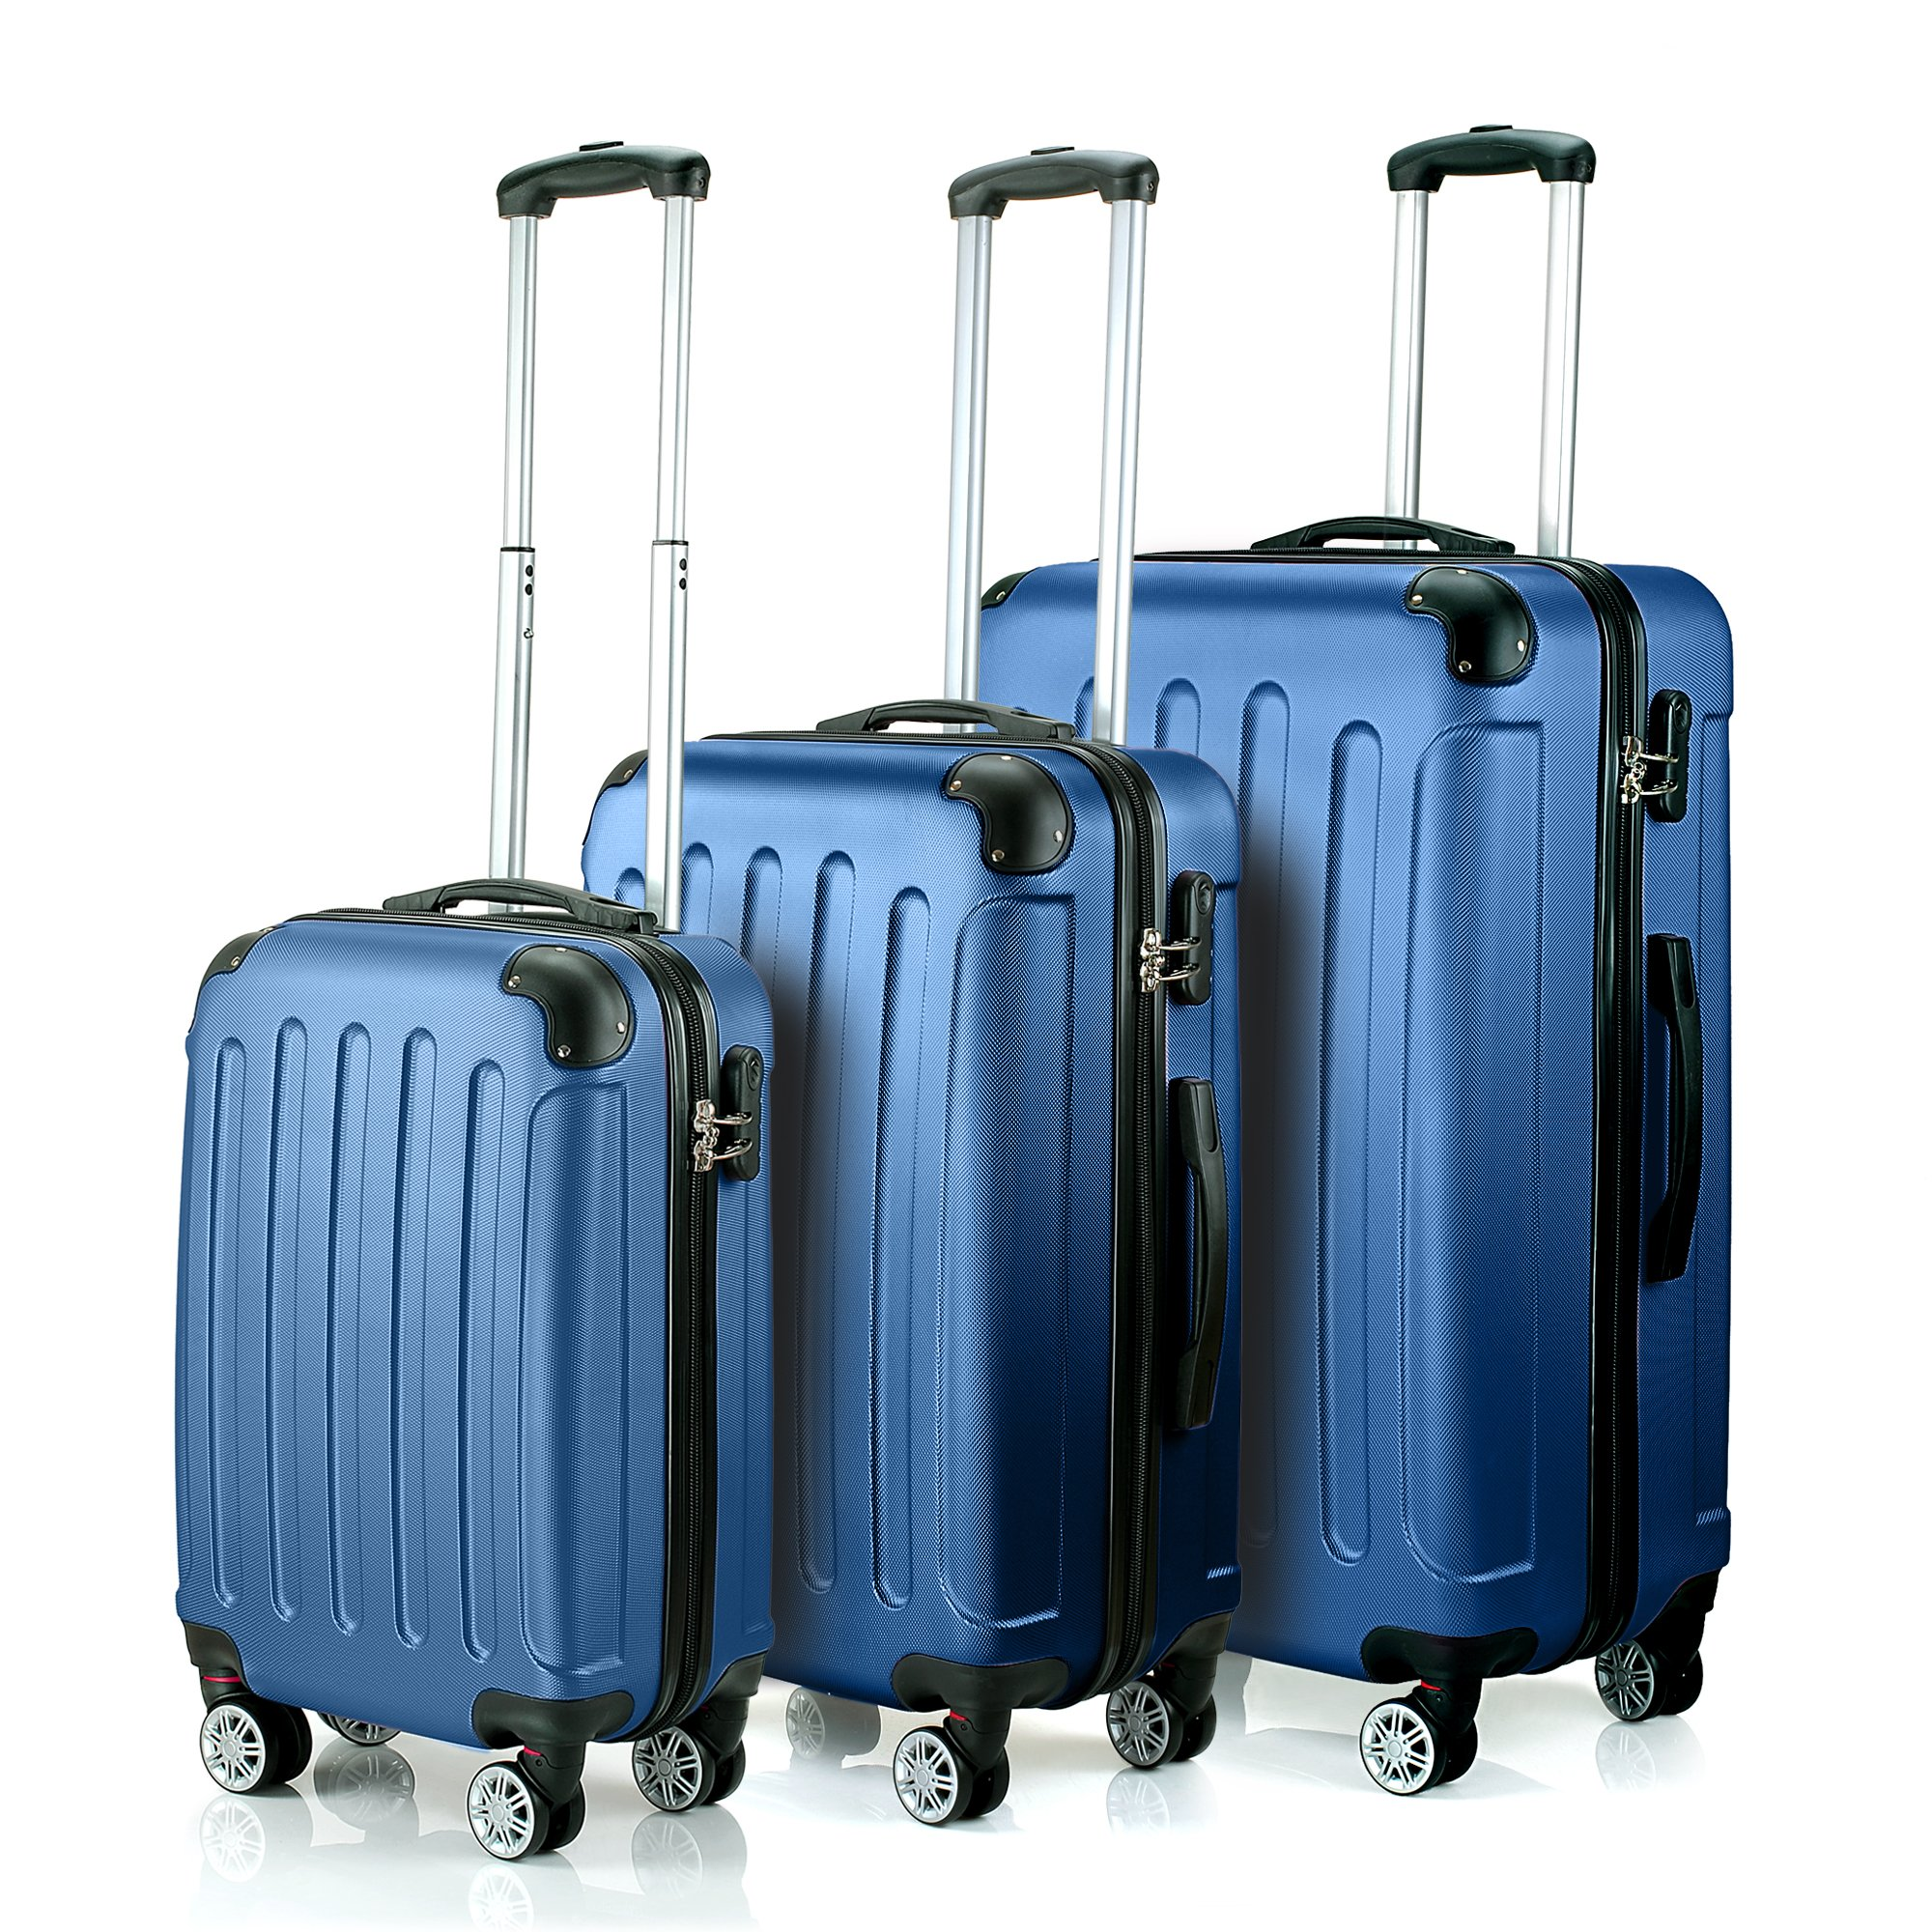 Timmari Hard Lightweight ABS Luggage Set – 29'' + 26'' + 21'' Premium Quality Sturdy & Durable Hardshell - Double Wheels & Protected Corners – Ultra Strong Zipper & Number Lock (Sky Blue)